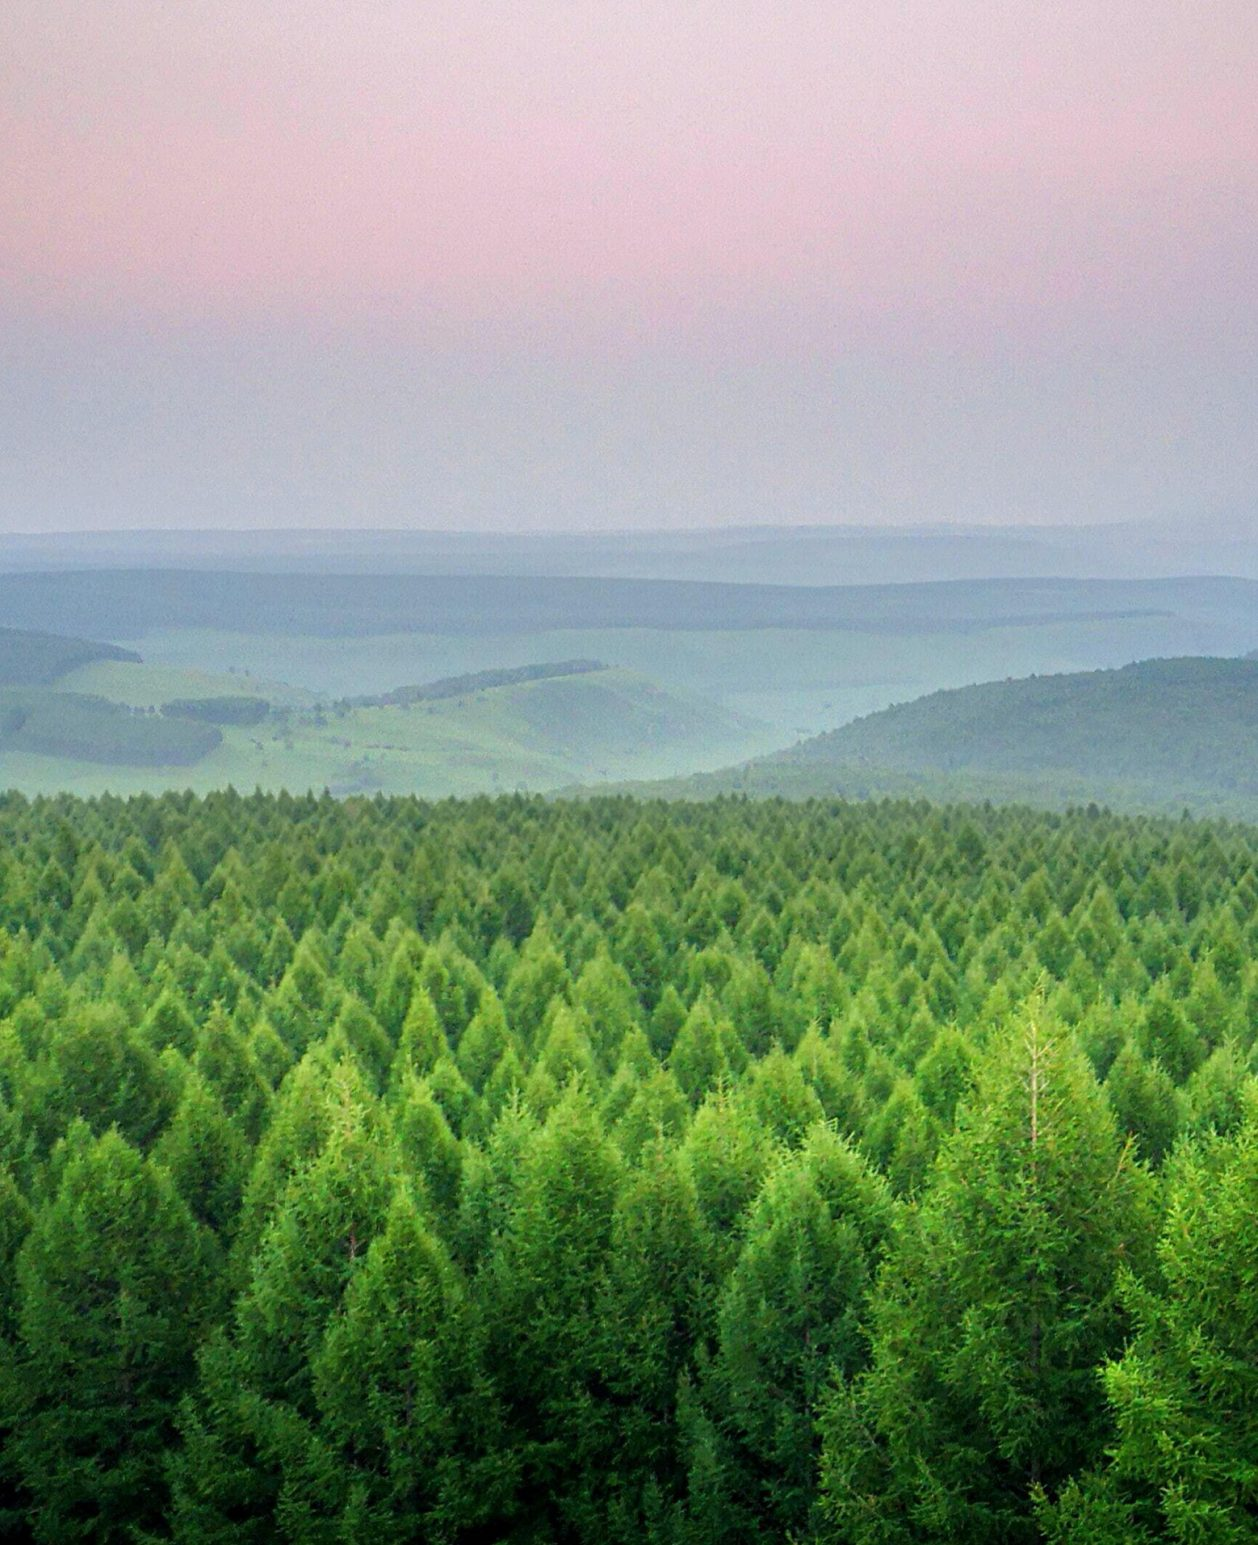 Forest sustainability